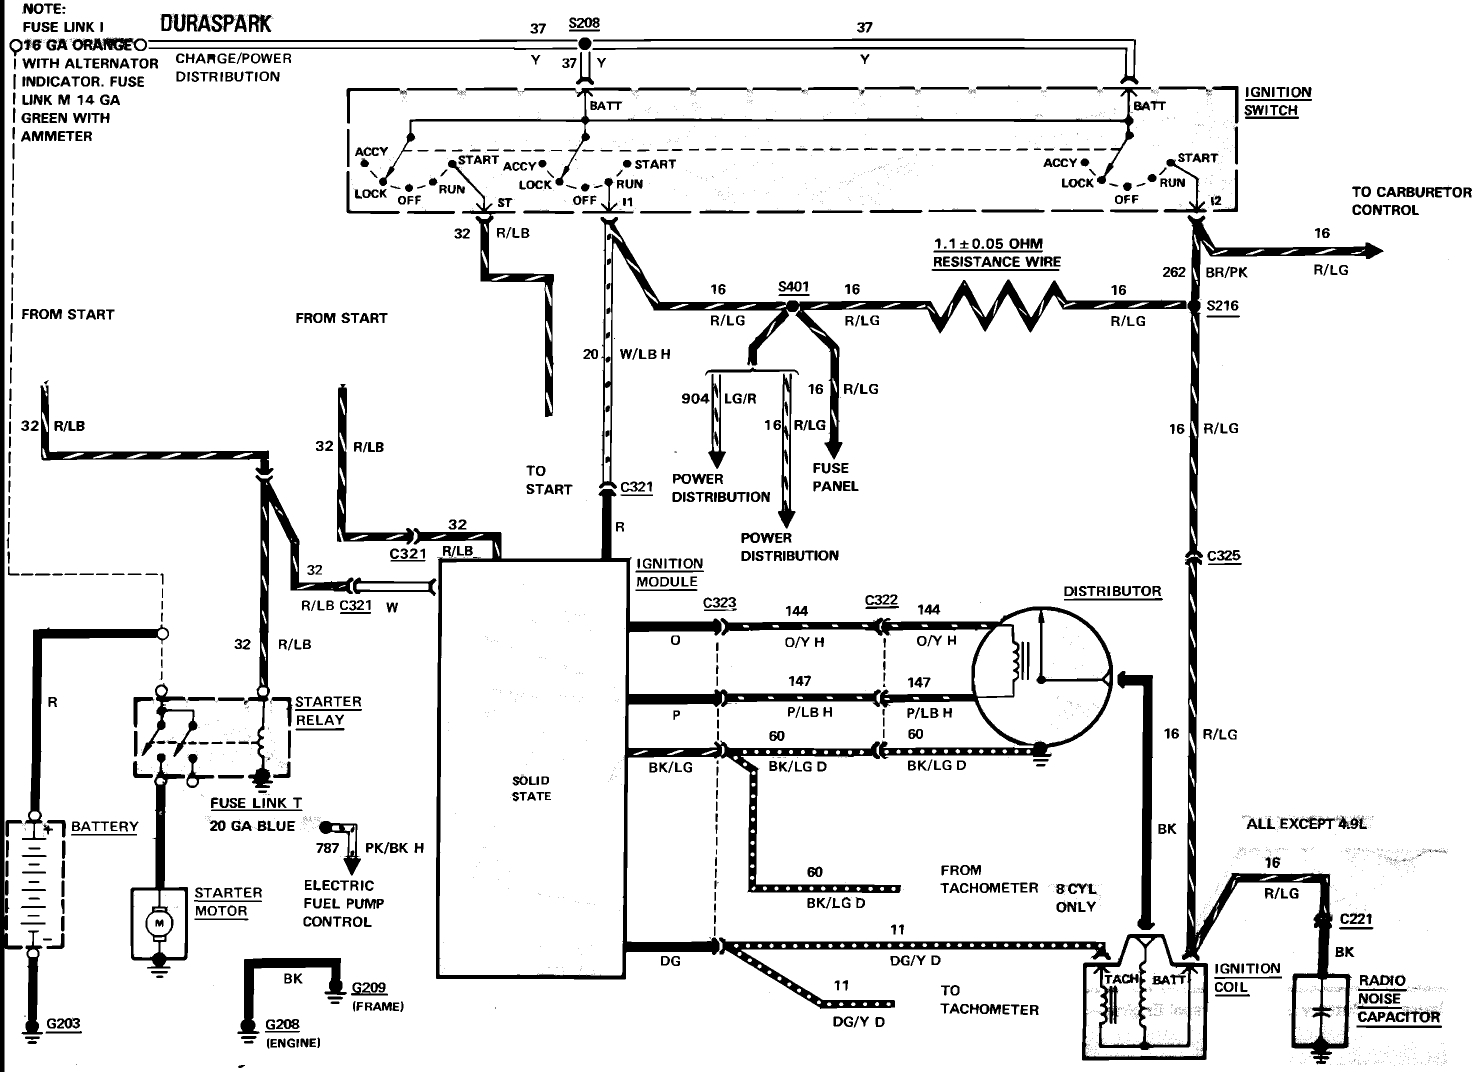 1989 ford f150 ignition wiring diagram | free wiring diagram 1984 ford ignition wiring diagram free download